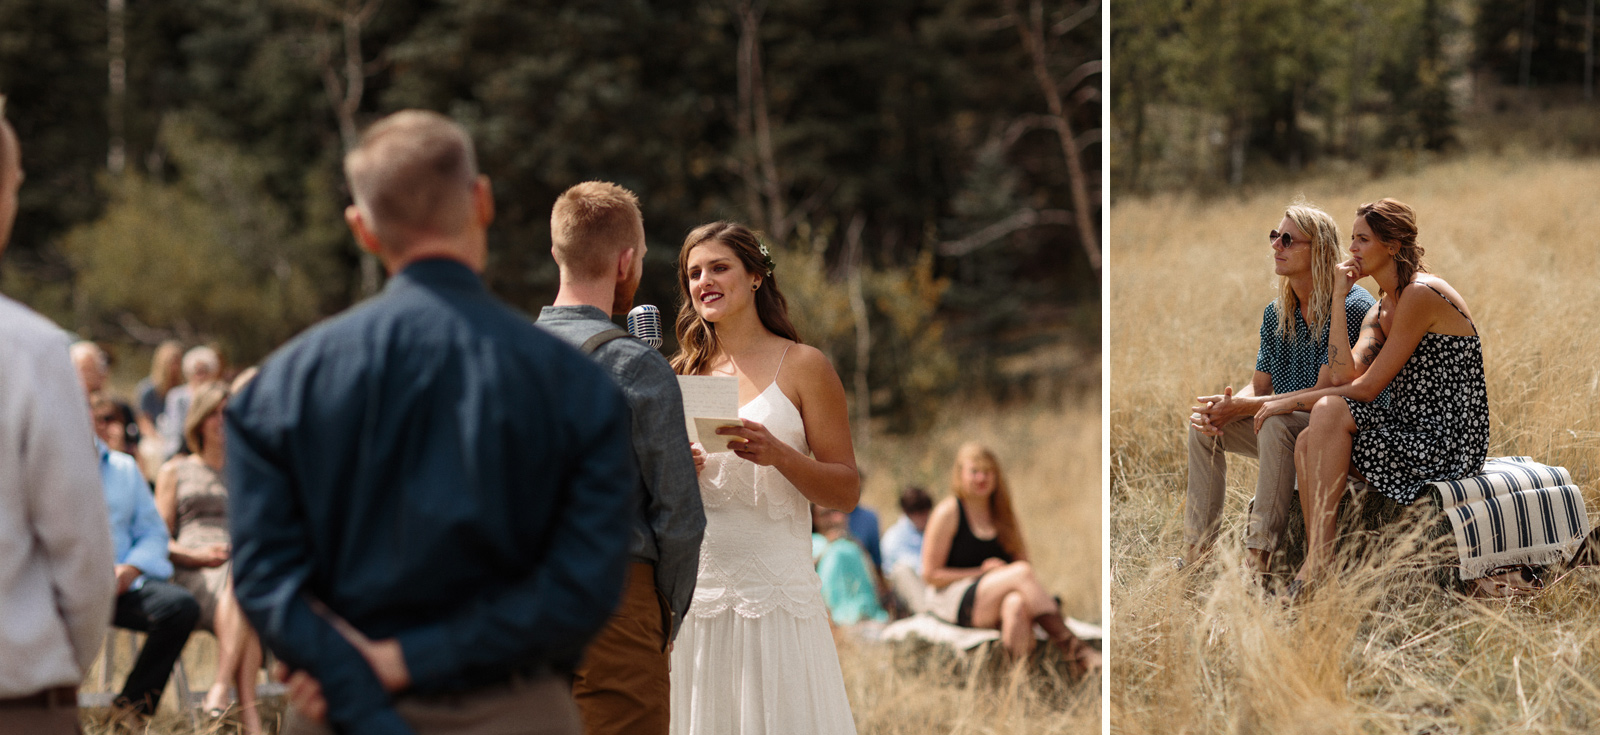 Jefferson-Colorado-Wedding-Photographer-Candice-and-TJ-21.jpg